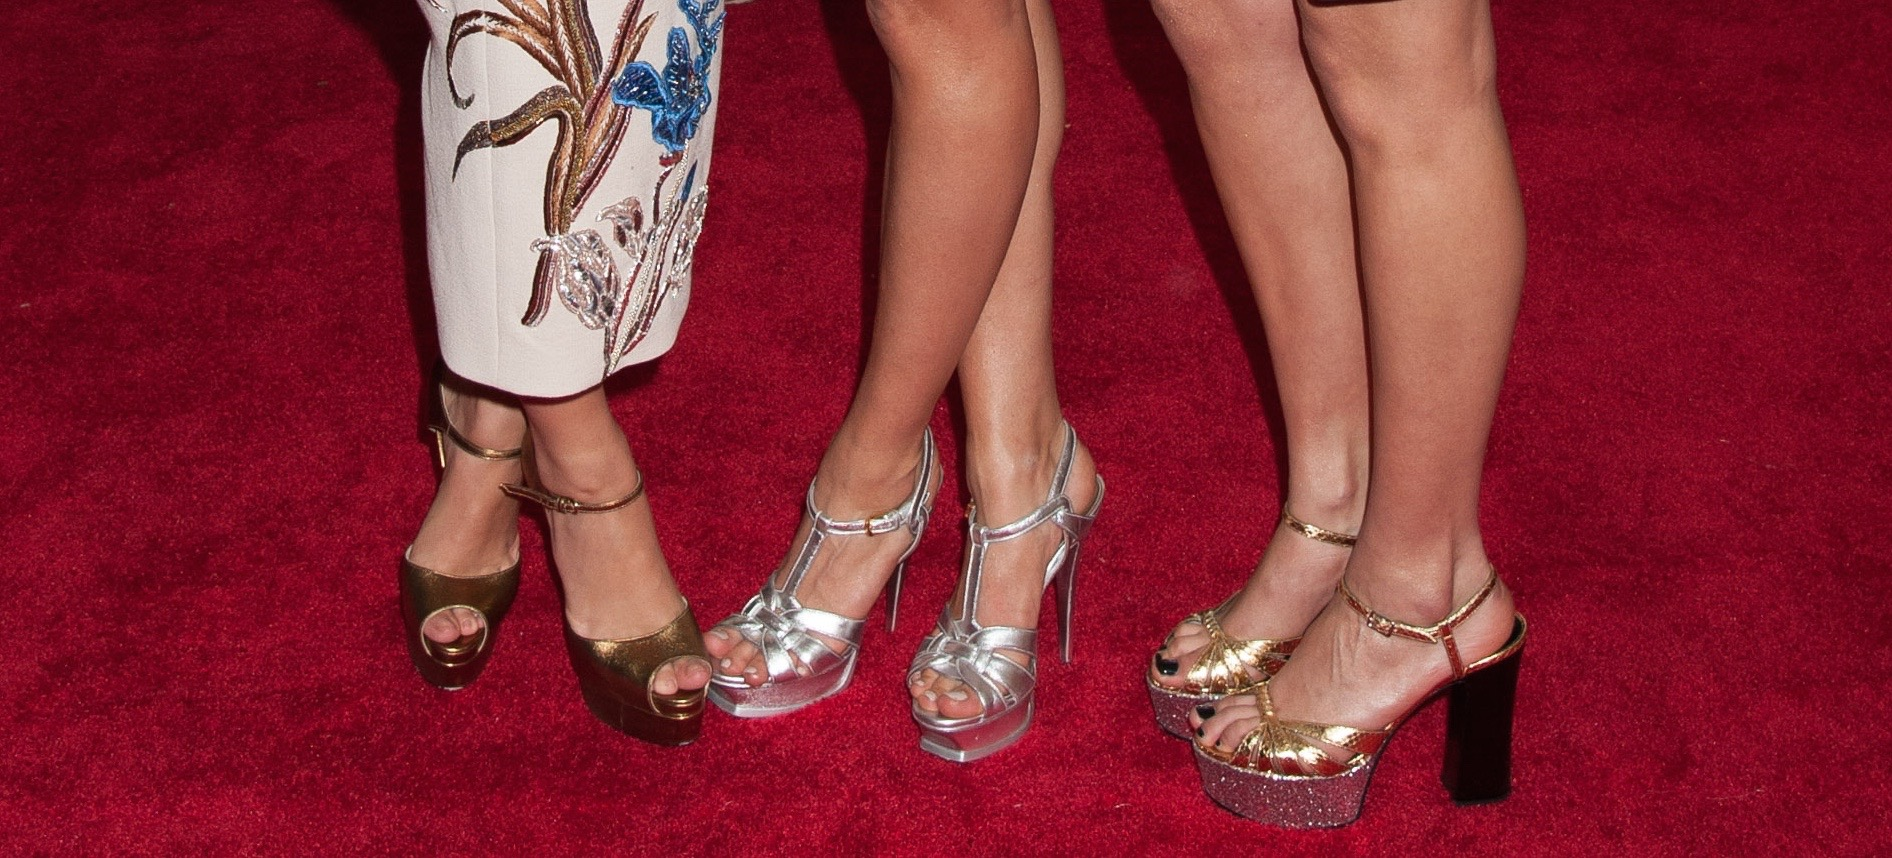 8 Secrets for Wearing Heels Comfortably All Day Long